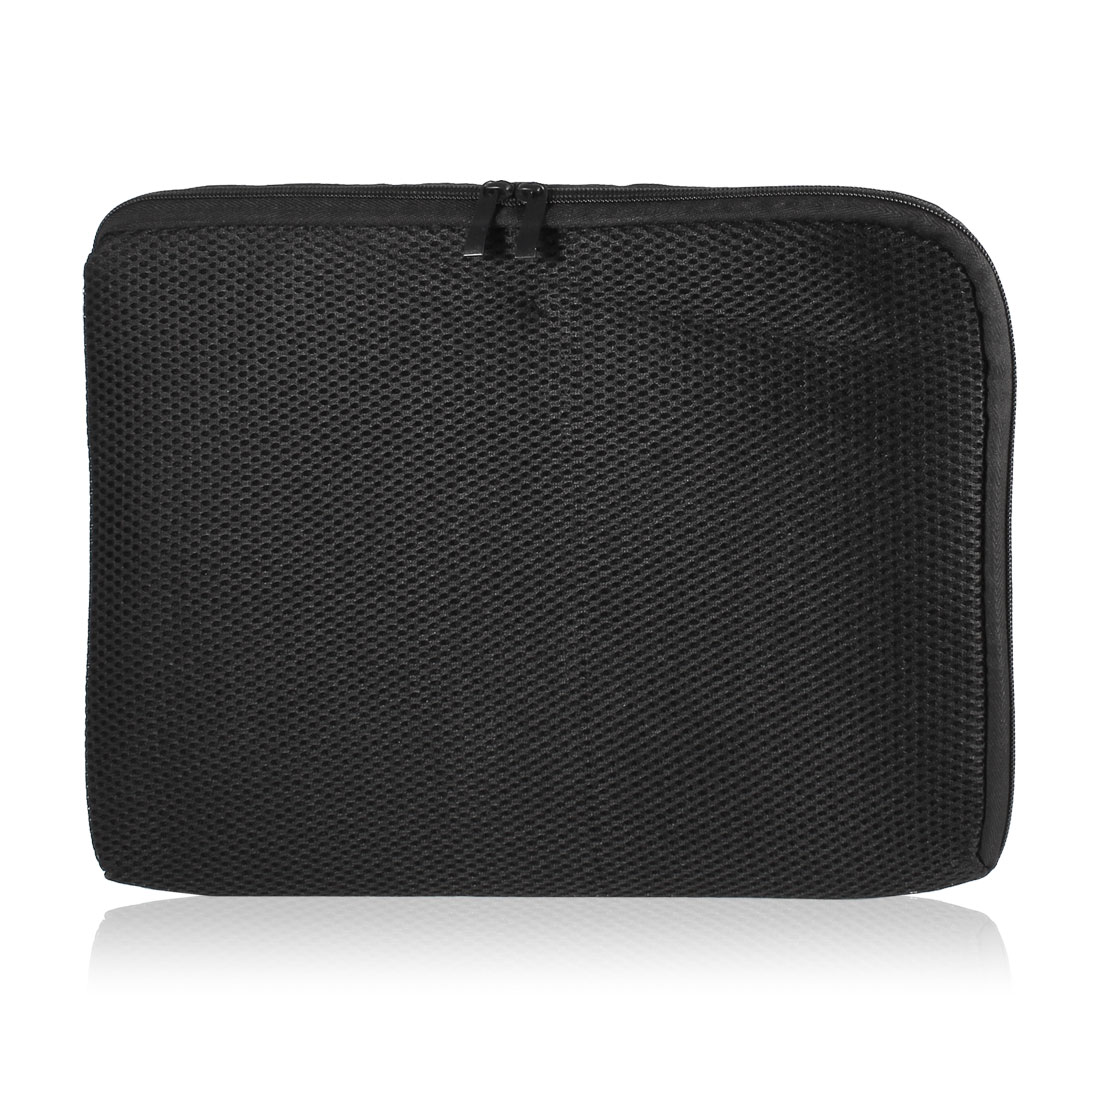 Household Office Mesh Neoprene Notebook Laptop Sleeve Bag Case Black